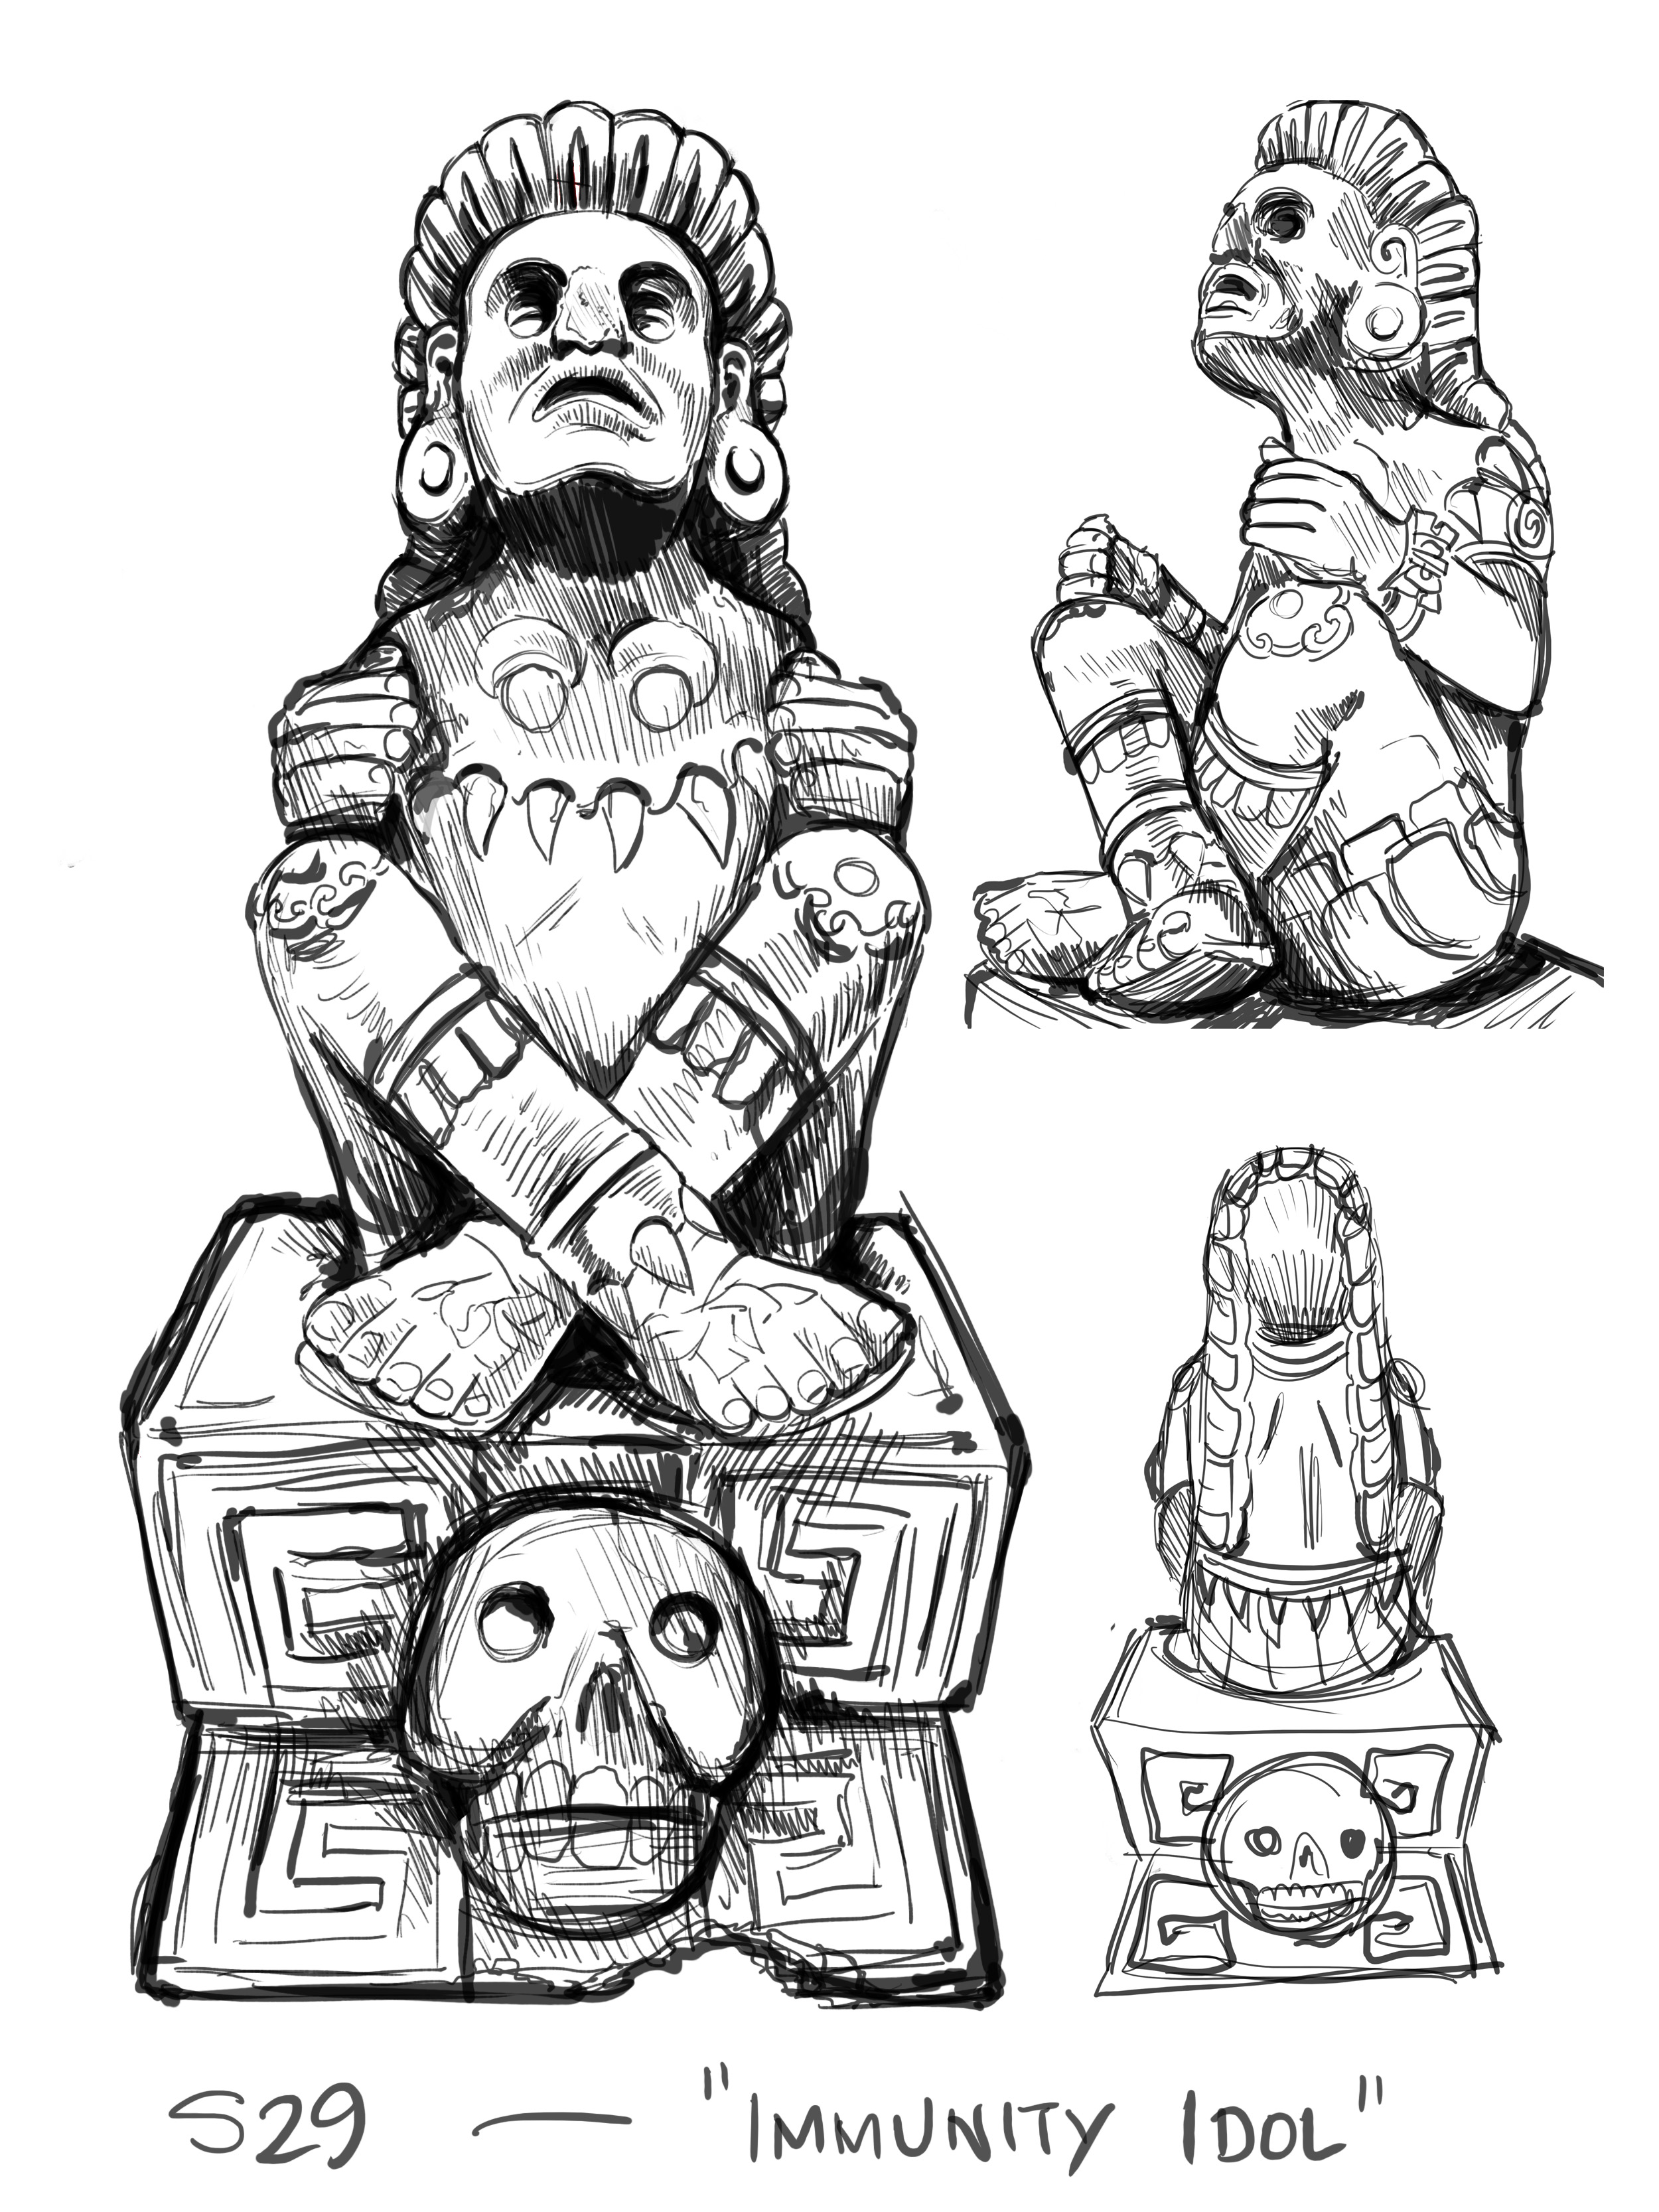 Immunity Idol sketches